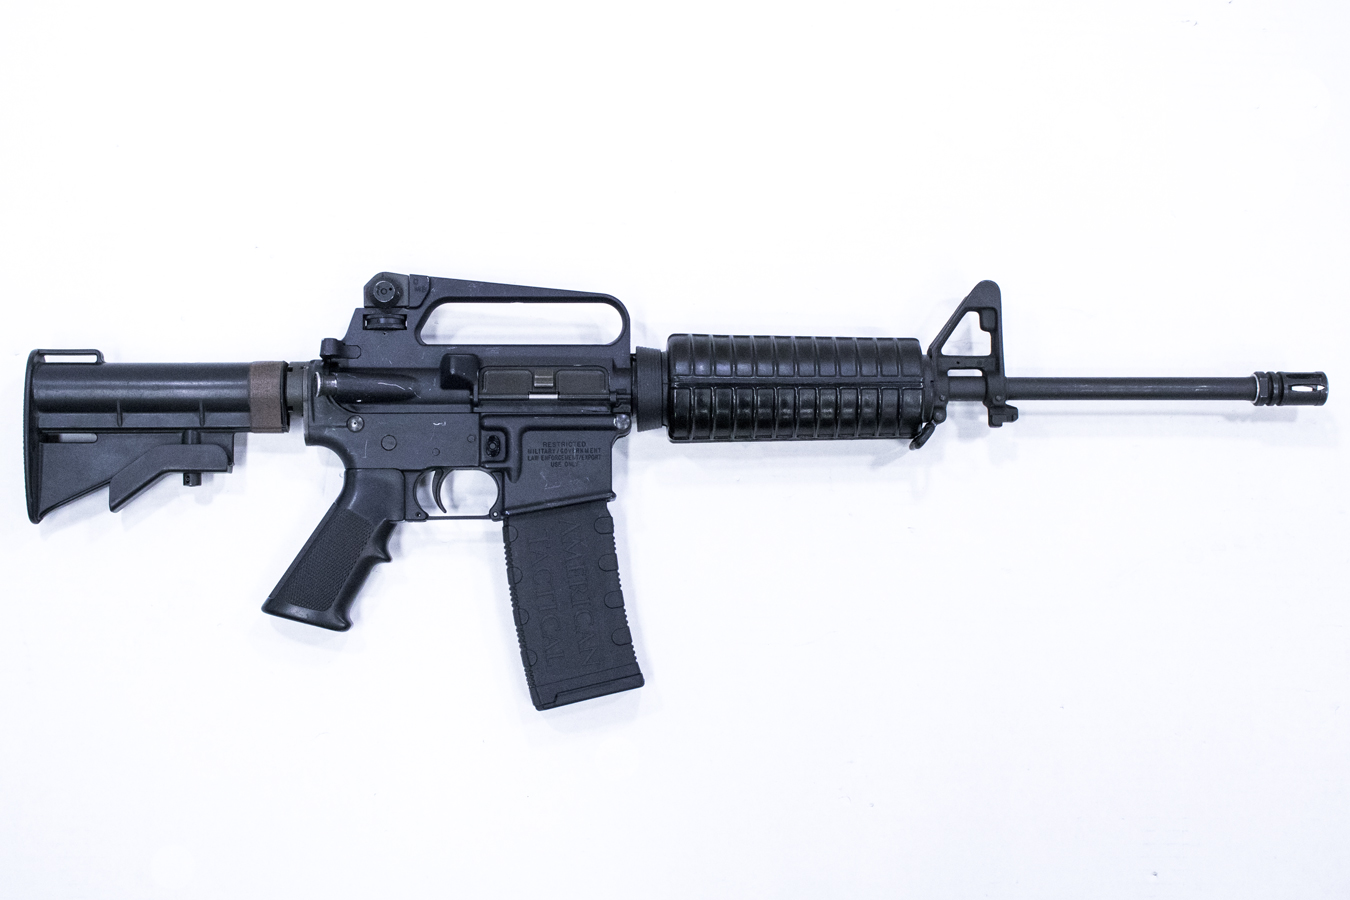 AR-15 A2 223/5.56MM POLICE TRADE-INS